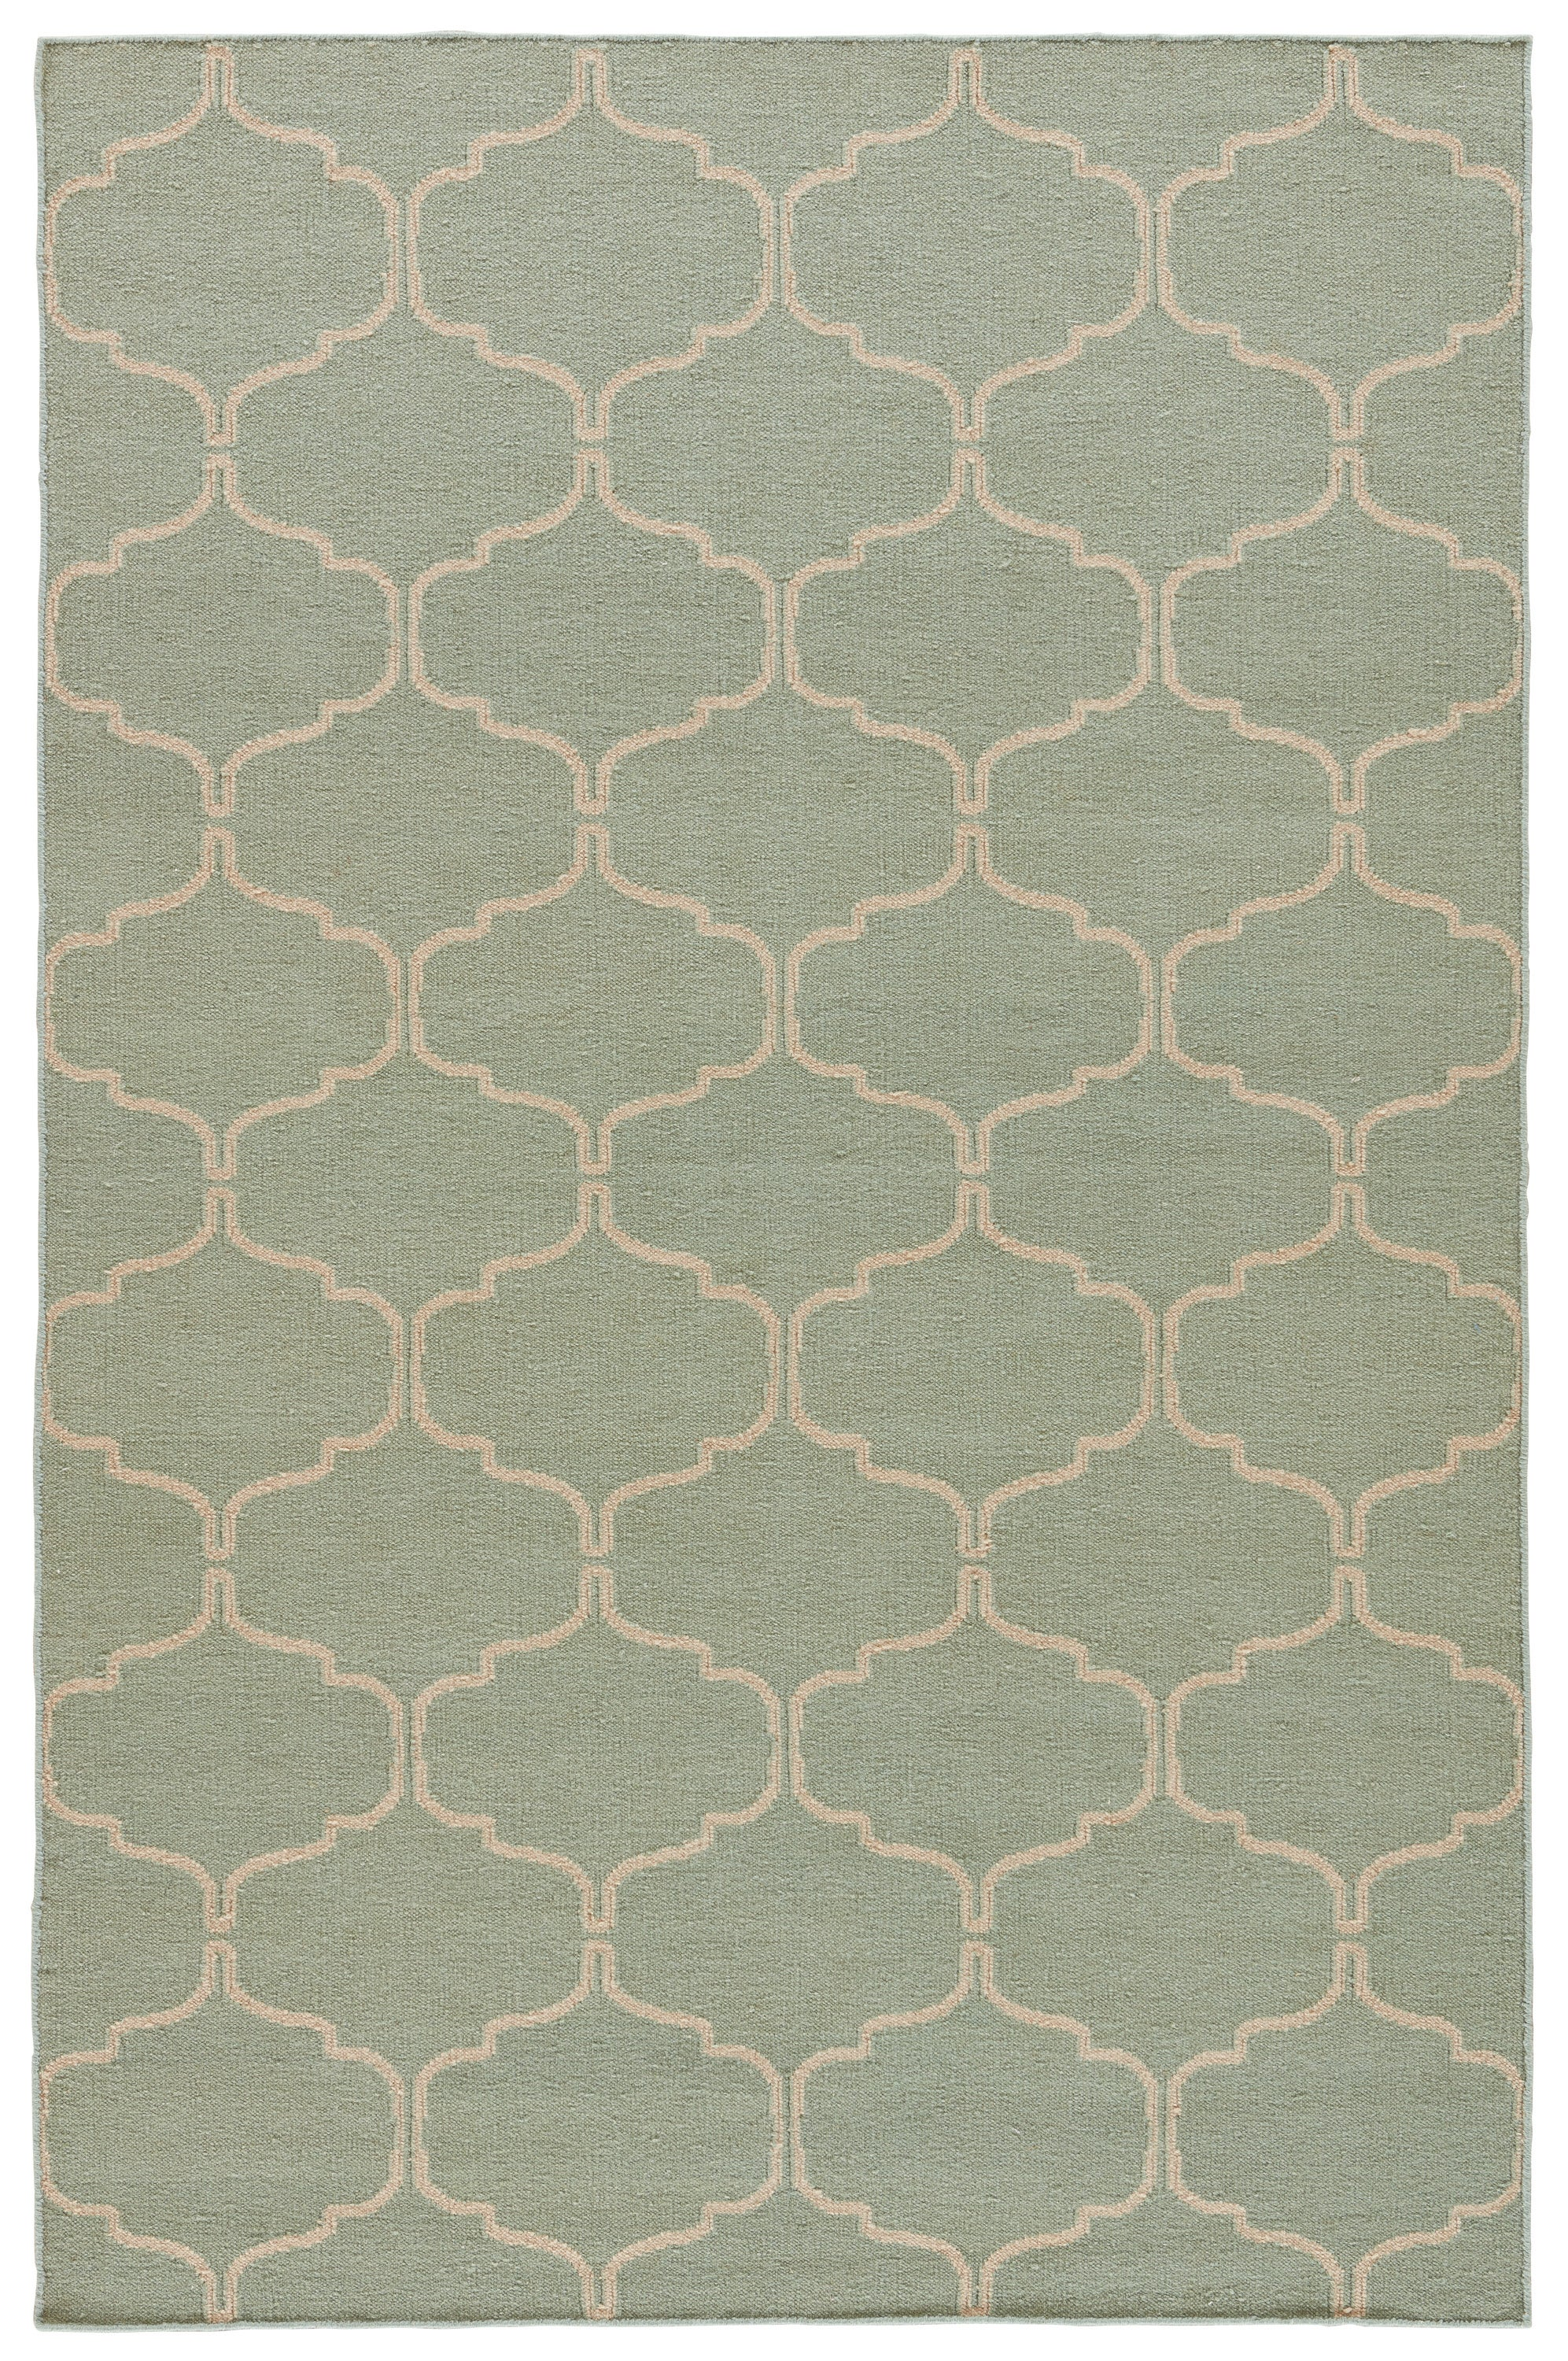 Rectangle Blue Trellis Dhurrie Wool Contemporary recommended for Bedroom, Bathroom, Dining Room, Office, Hallway, Living Room